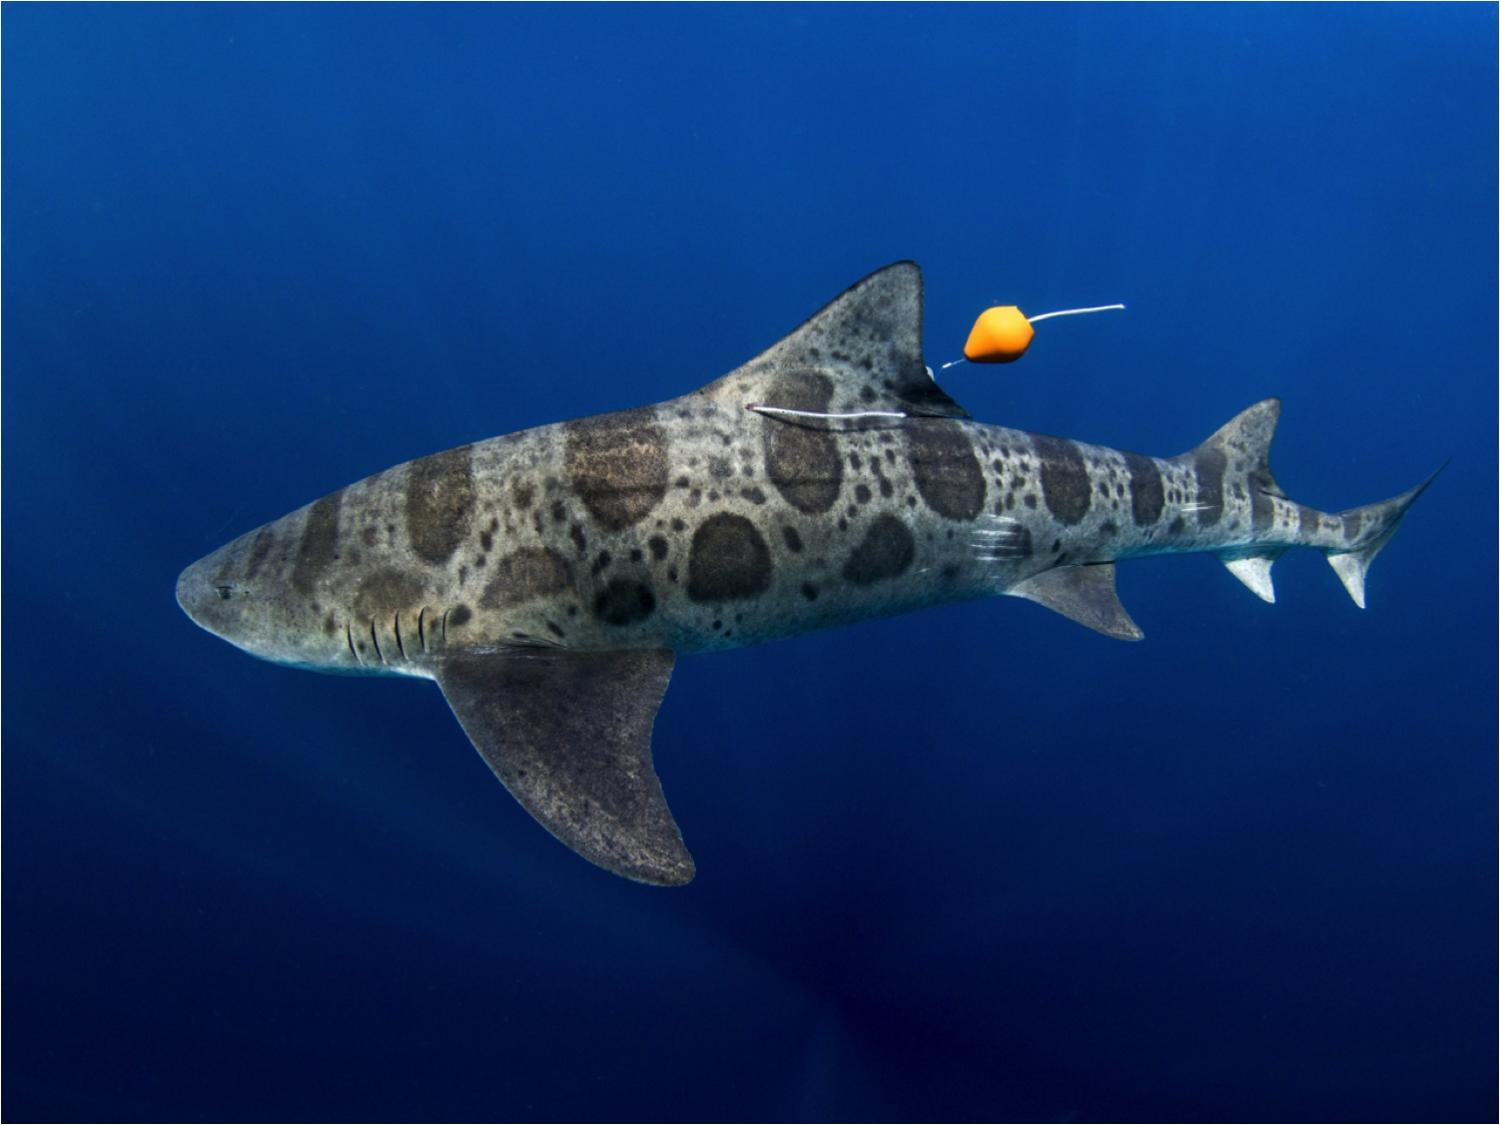 leopard sharks navigate with their nose